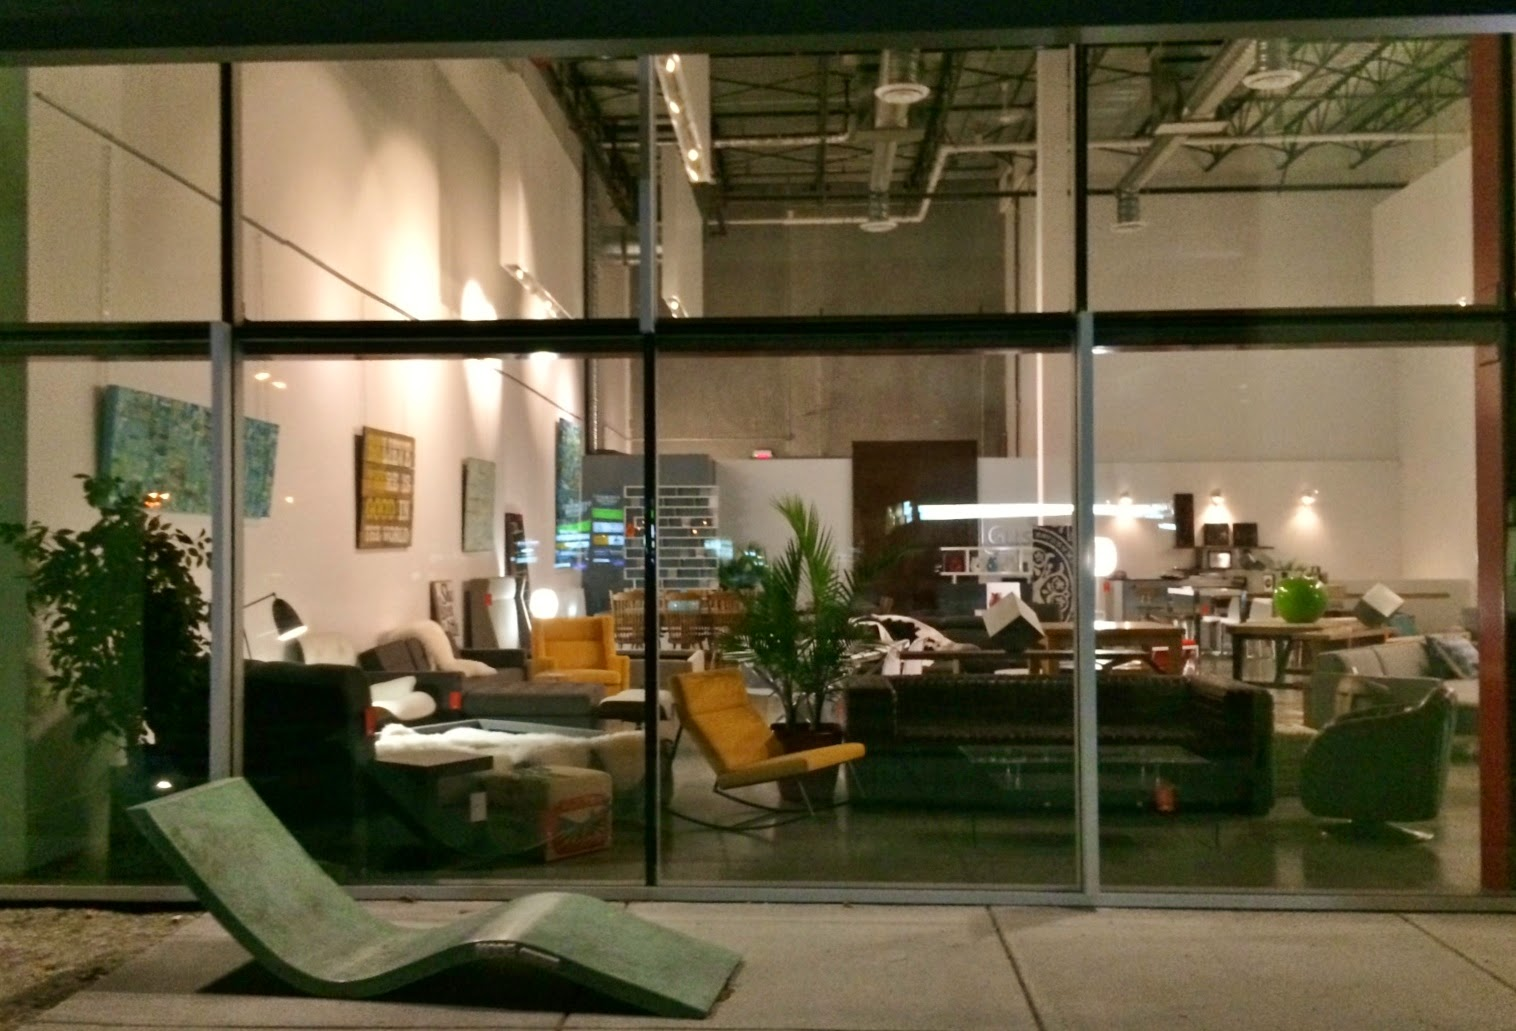 Why should you go check out factor furniture the gallery